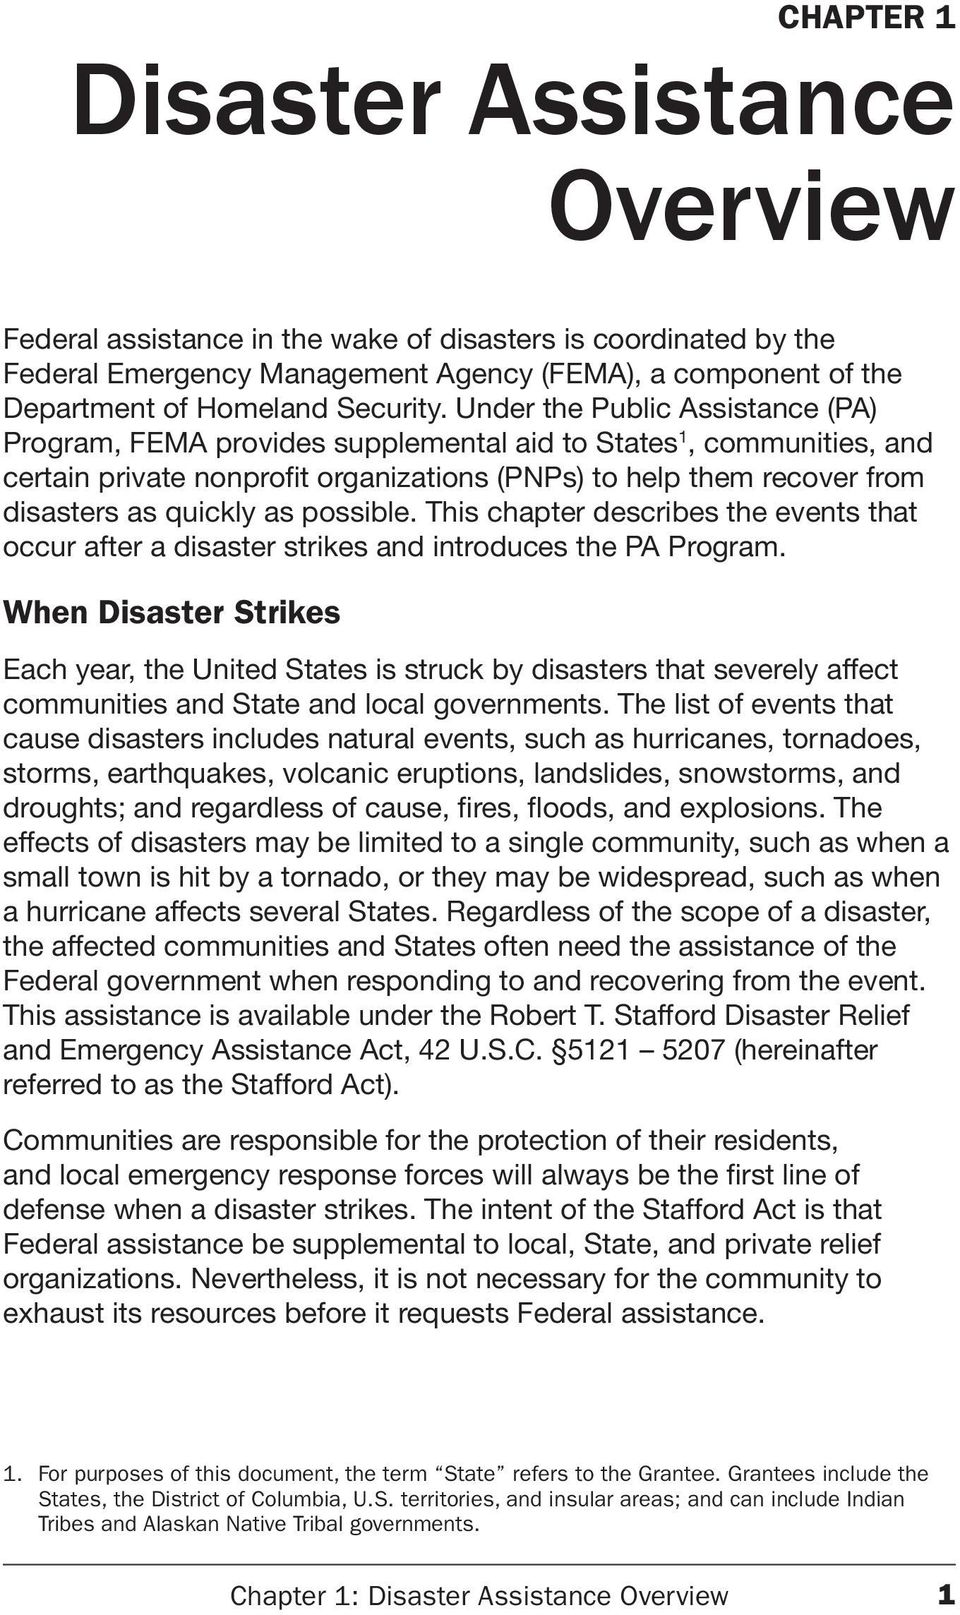 possible. This chapter describes the events that occur after a disaster strikes and introduces the PA Program.